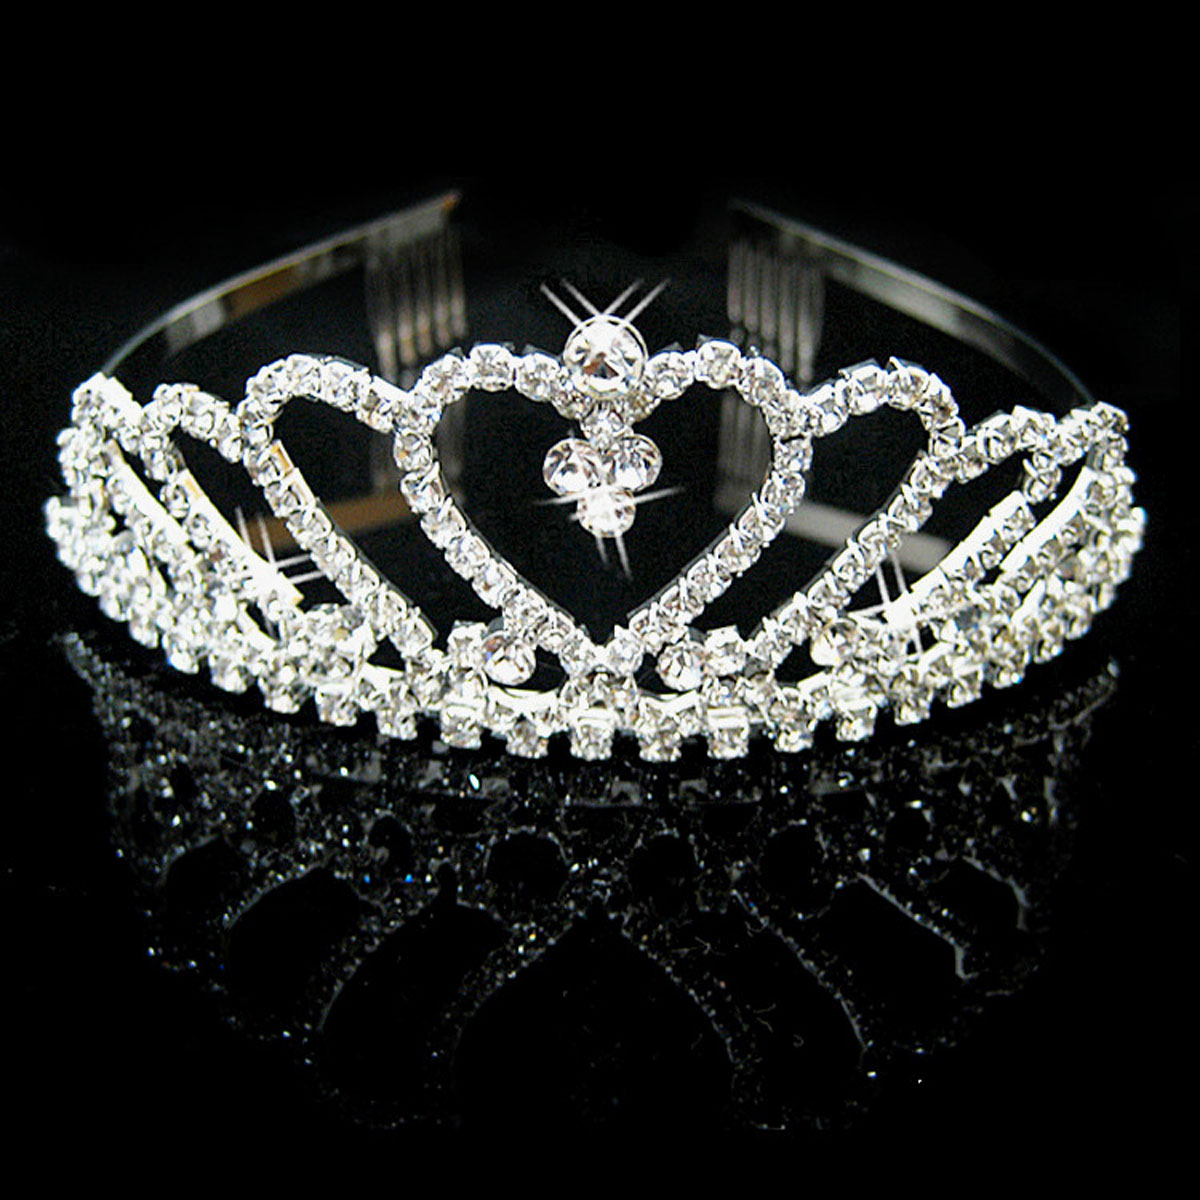 Simplicity Pageant Tiara and Crown Rhinestones Crystal Bridal Wedding, 957